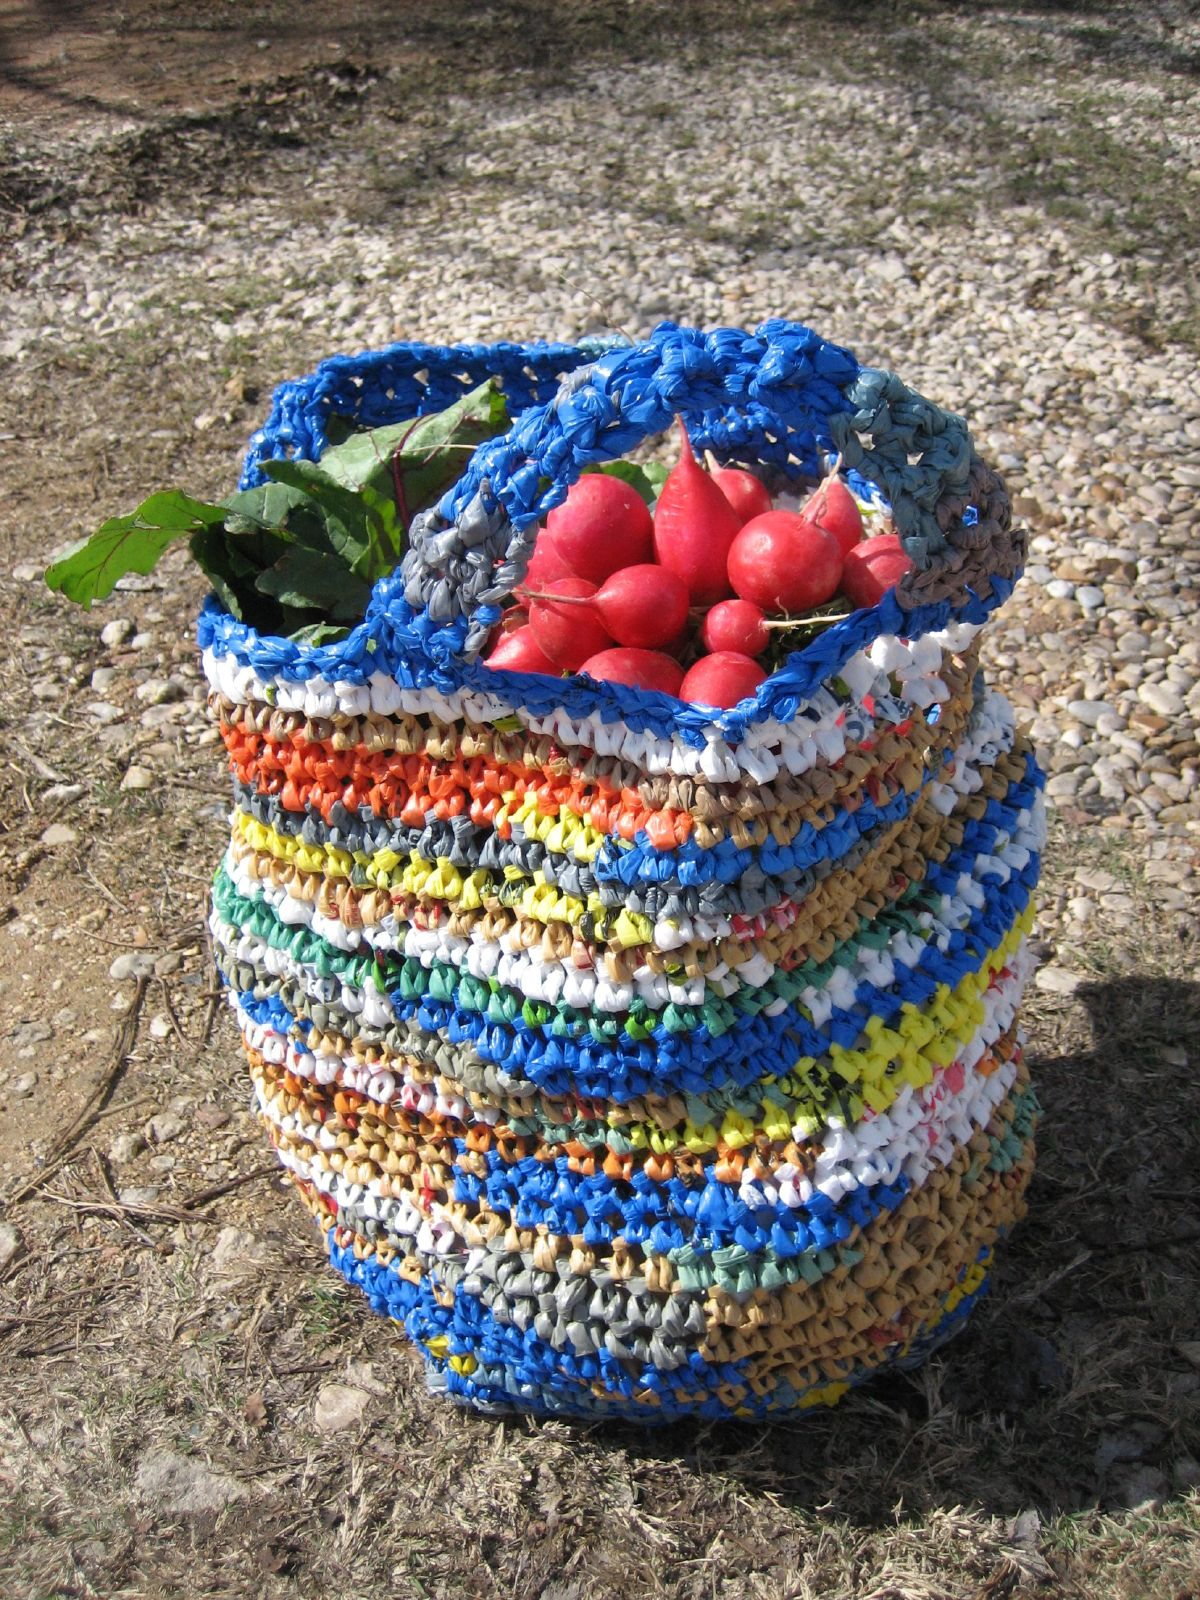 Plastic Bag Crochet Grocery Bag (2) BagsBeGone.com